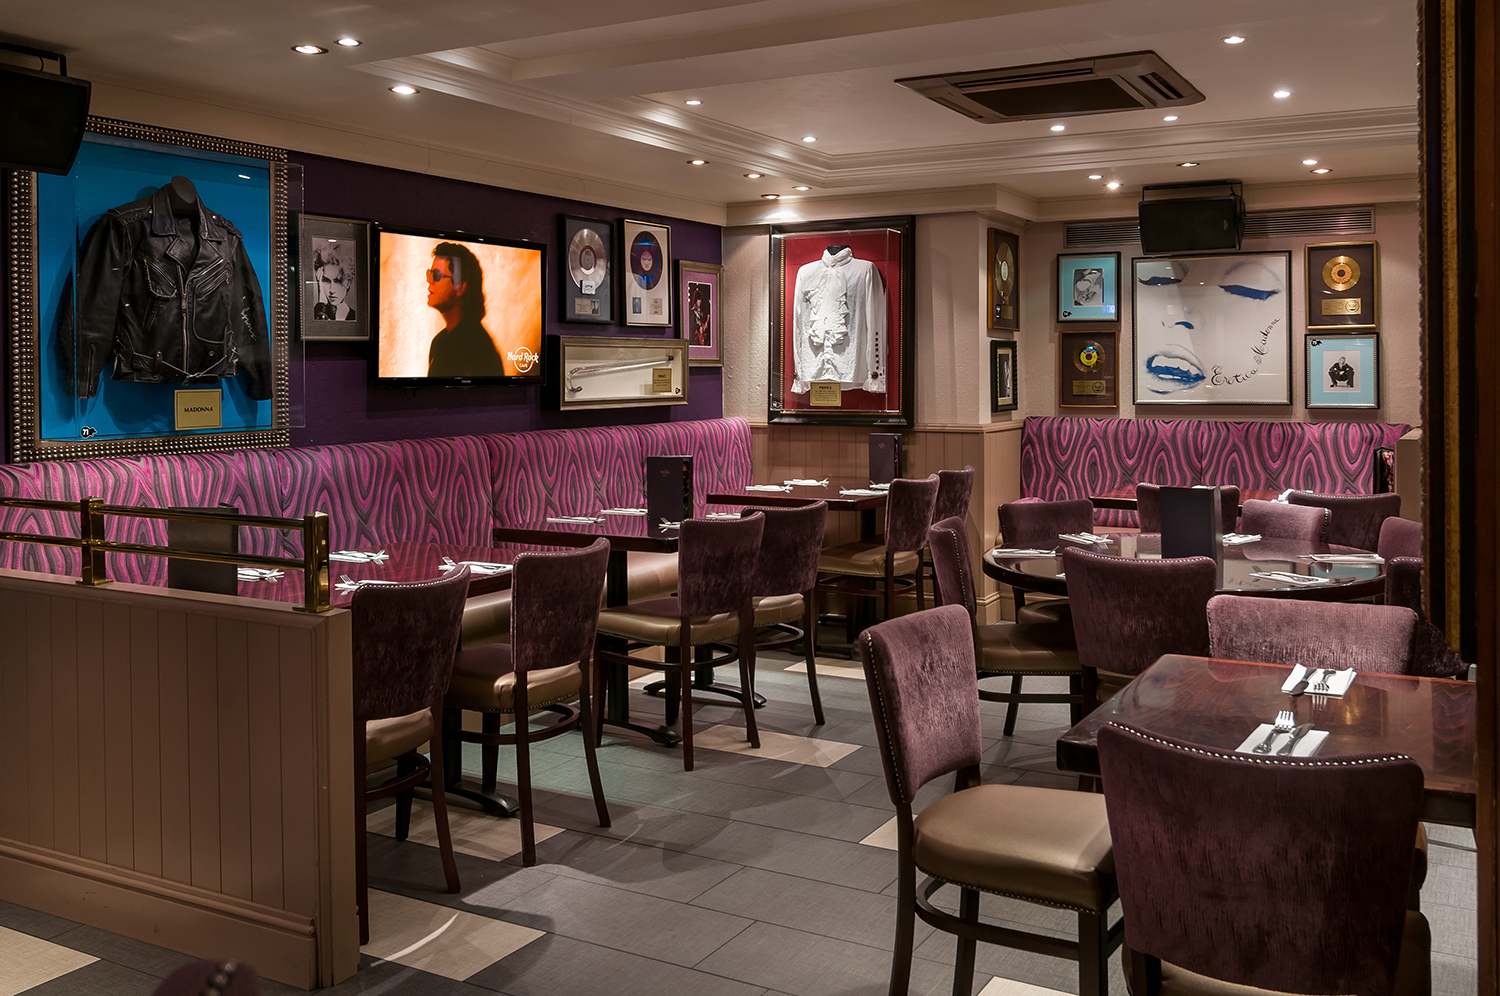 Hard Rock Cafe Mayfair